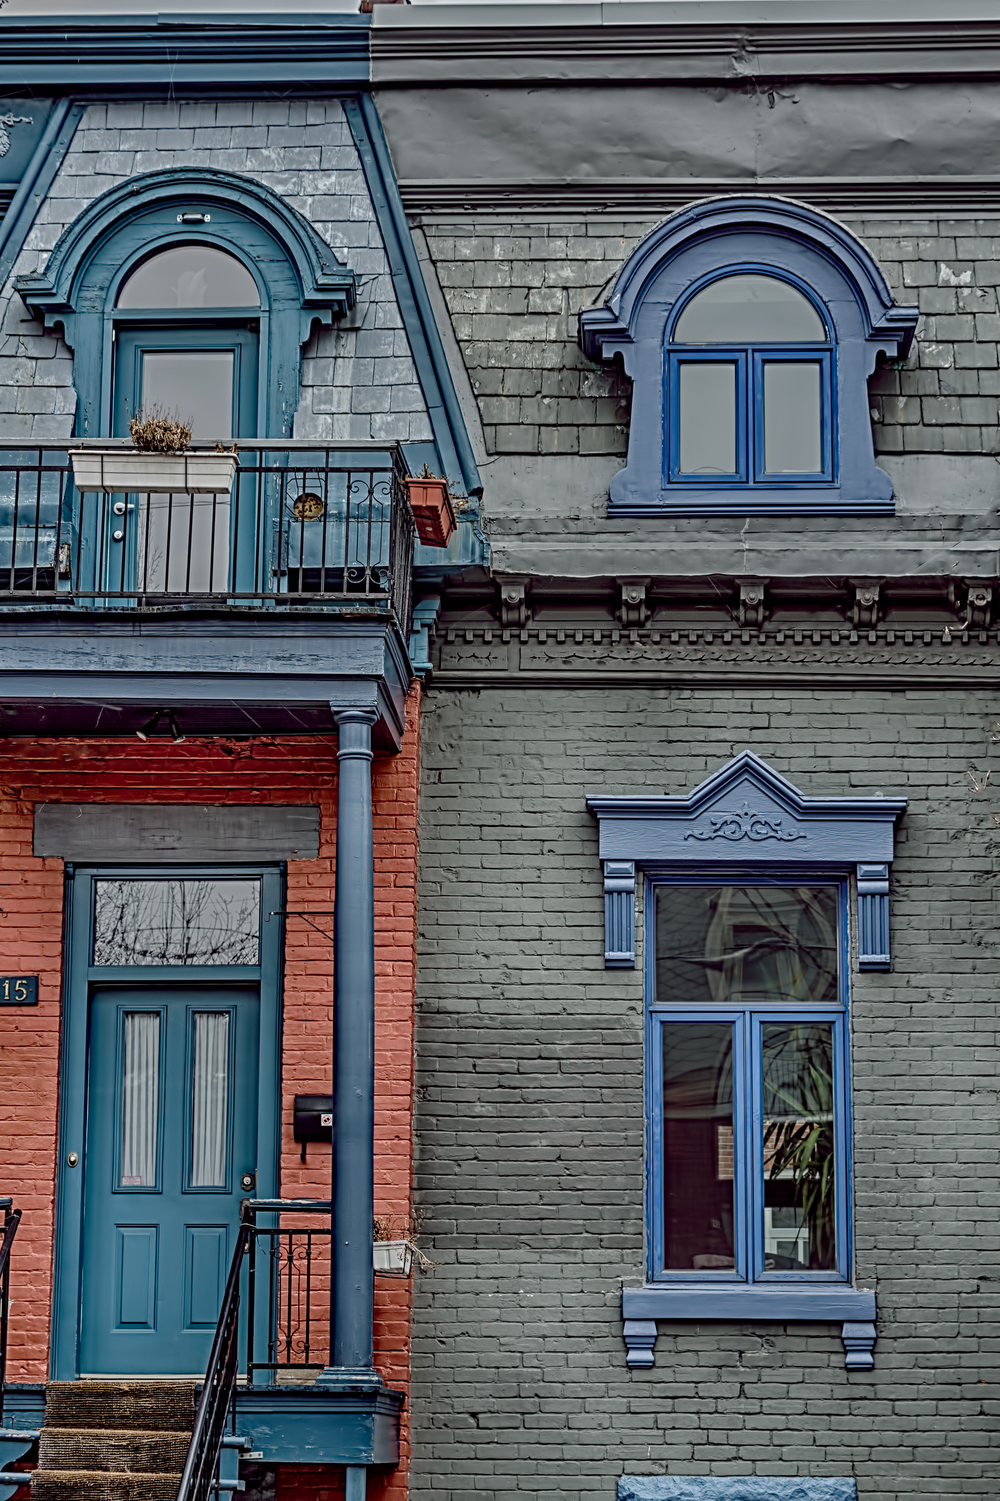 20140405_Architecture neat rue Roy & Colonial_IMG_3307_HDR-M.jpg